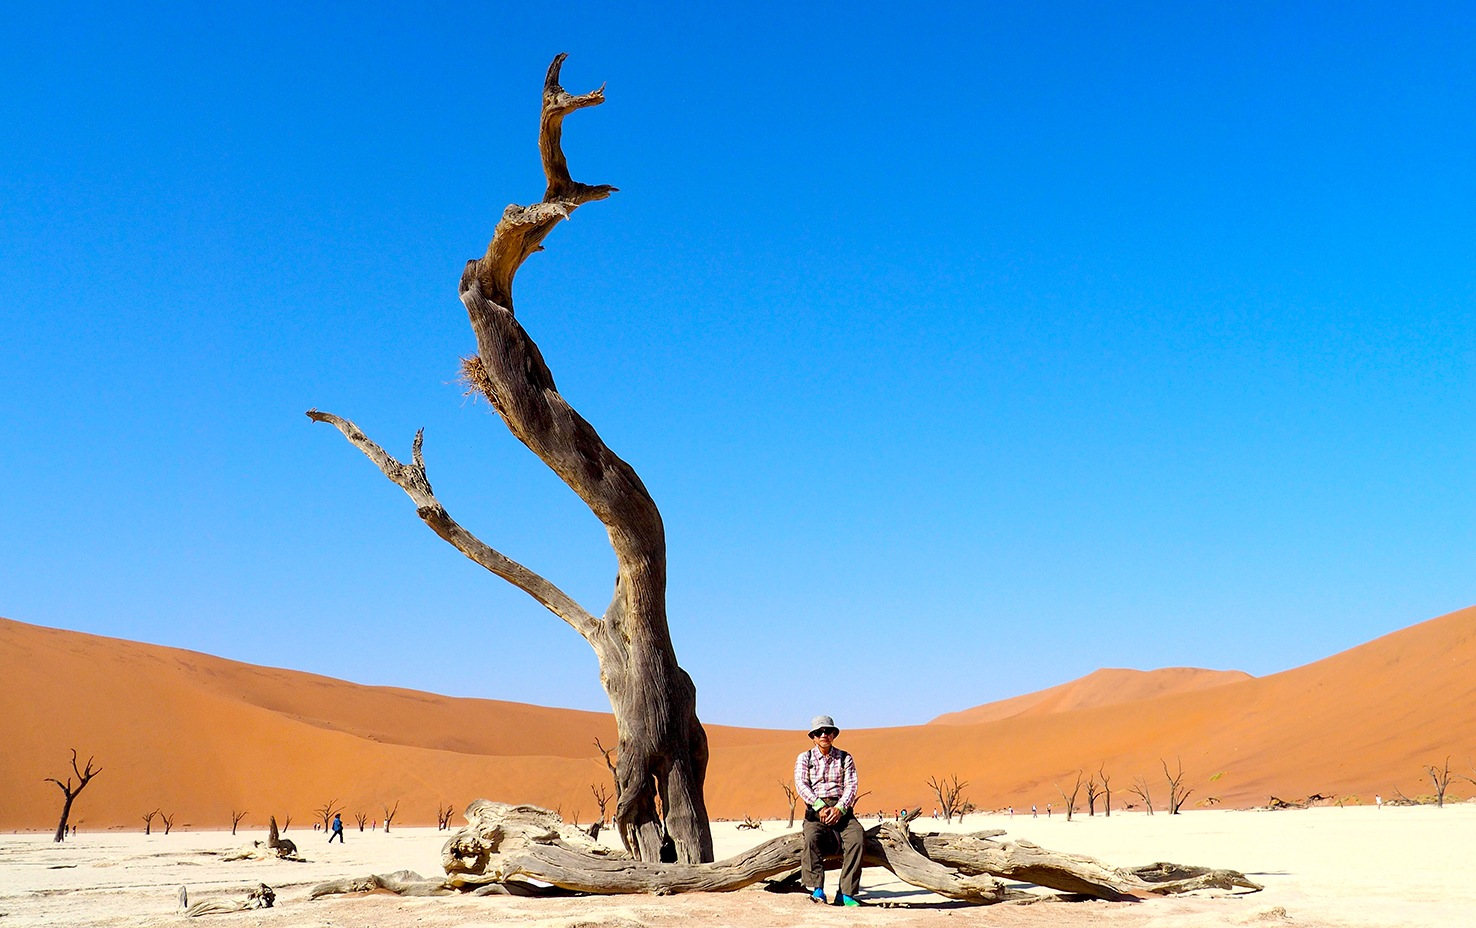 Me and the desert by Peter Liu